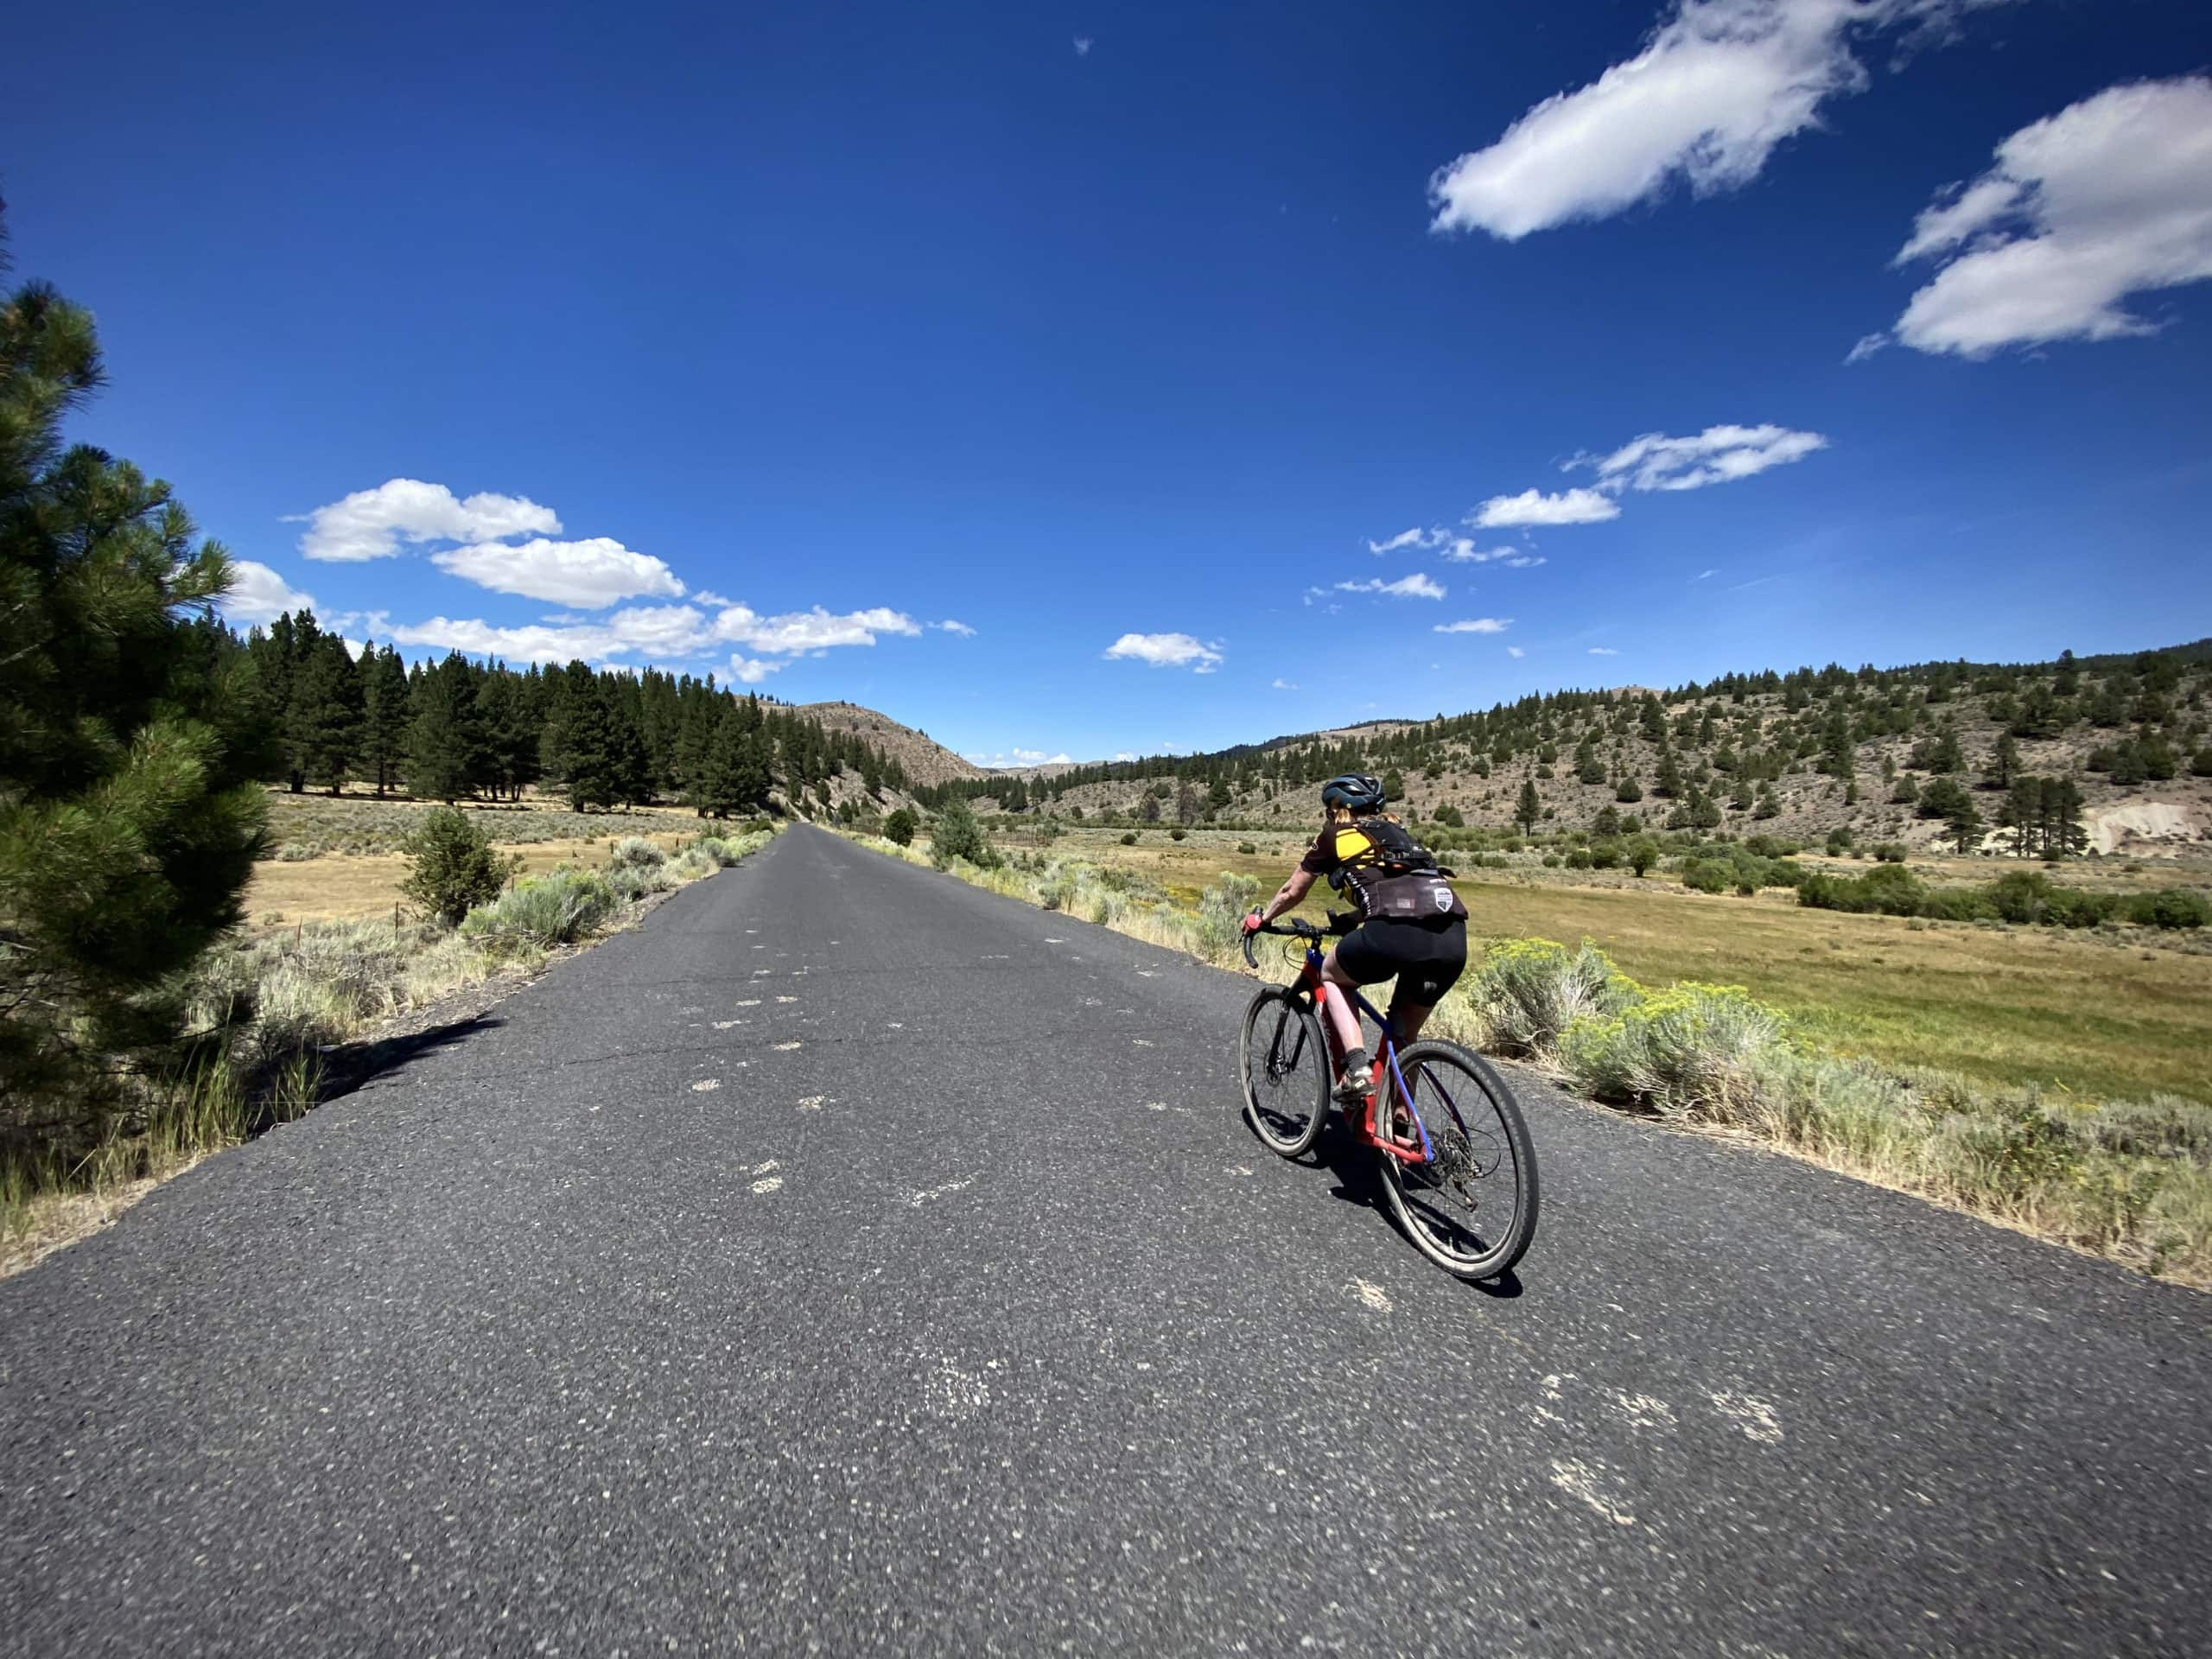 Cyclist on paved road near Coffee Pot Flat in Paisley, Oregon.